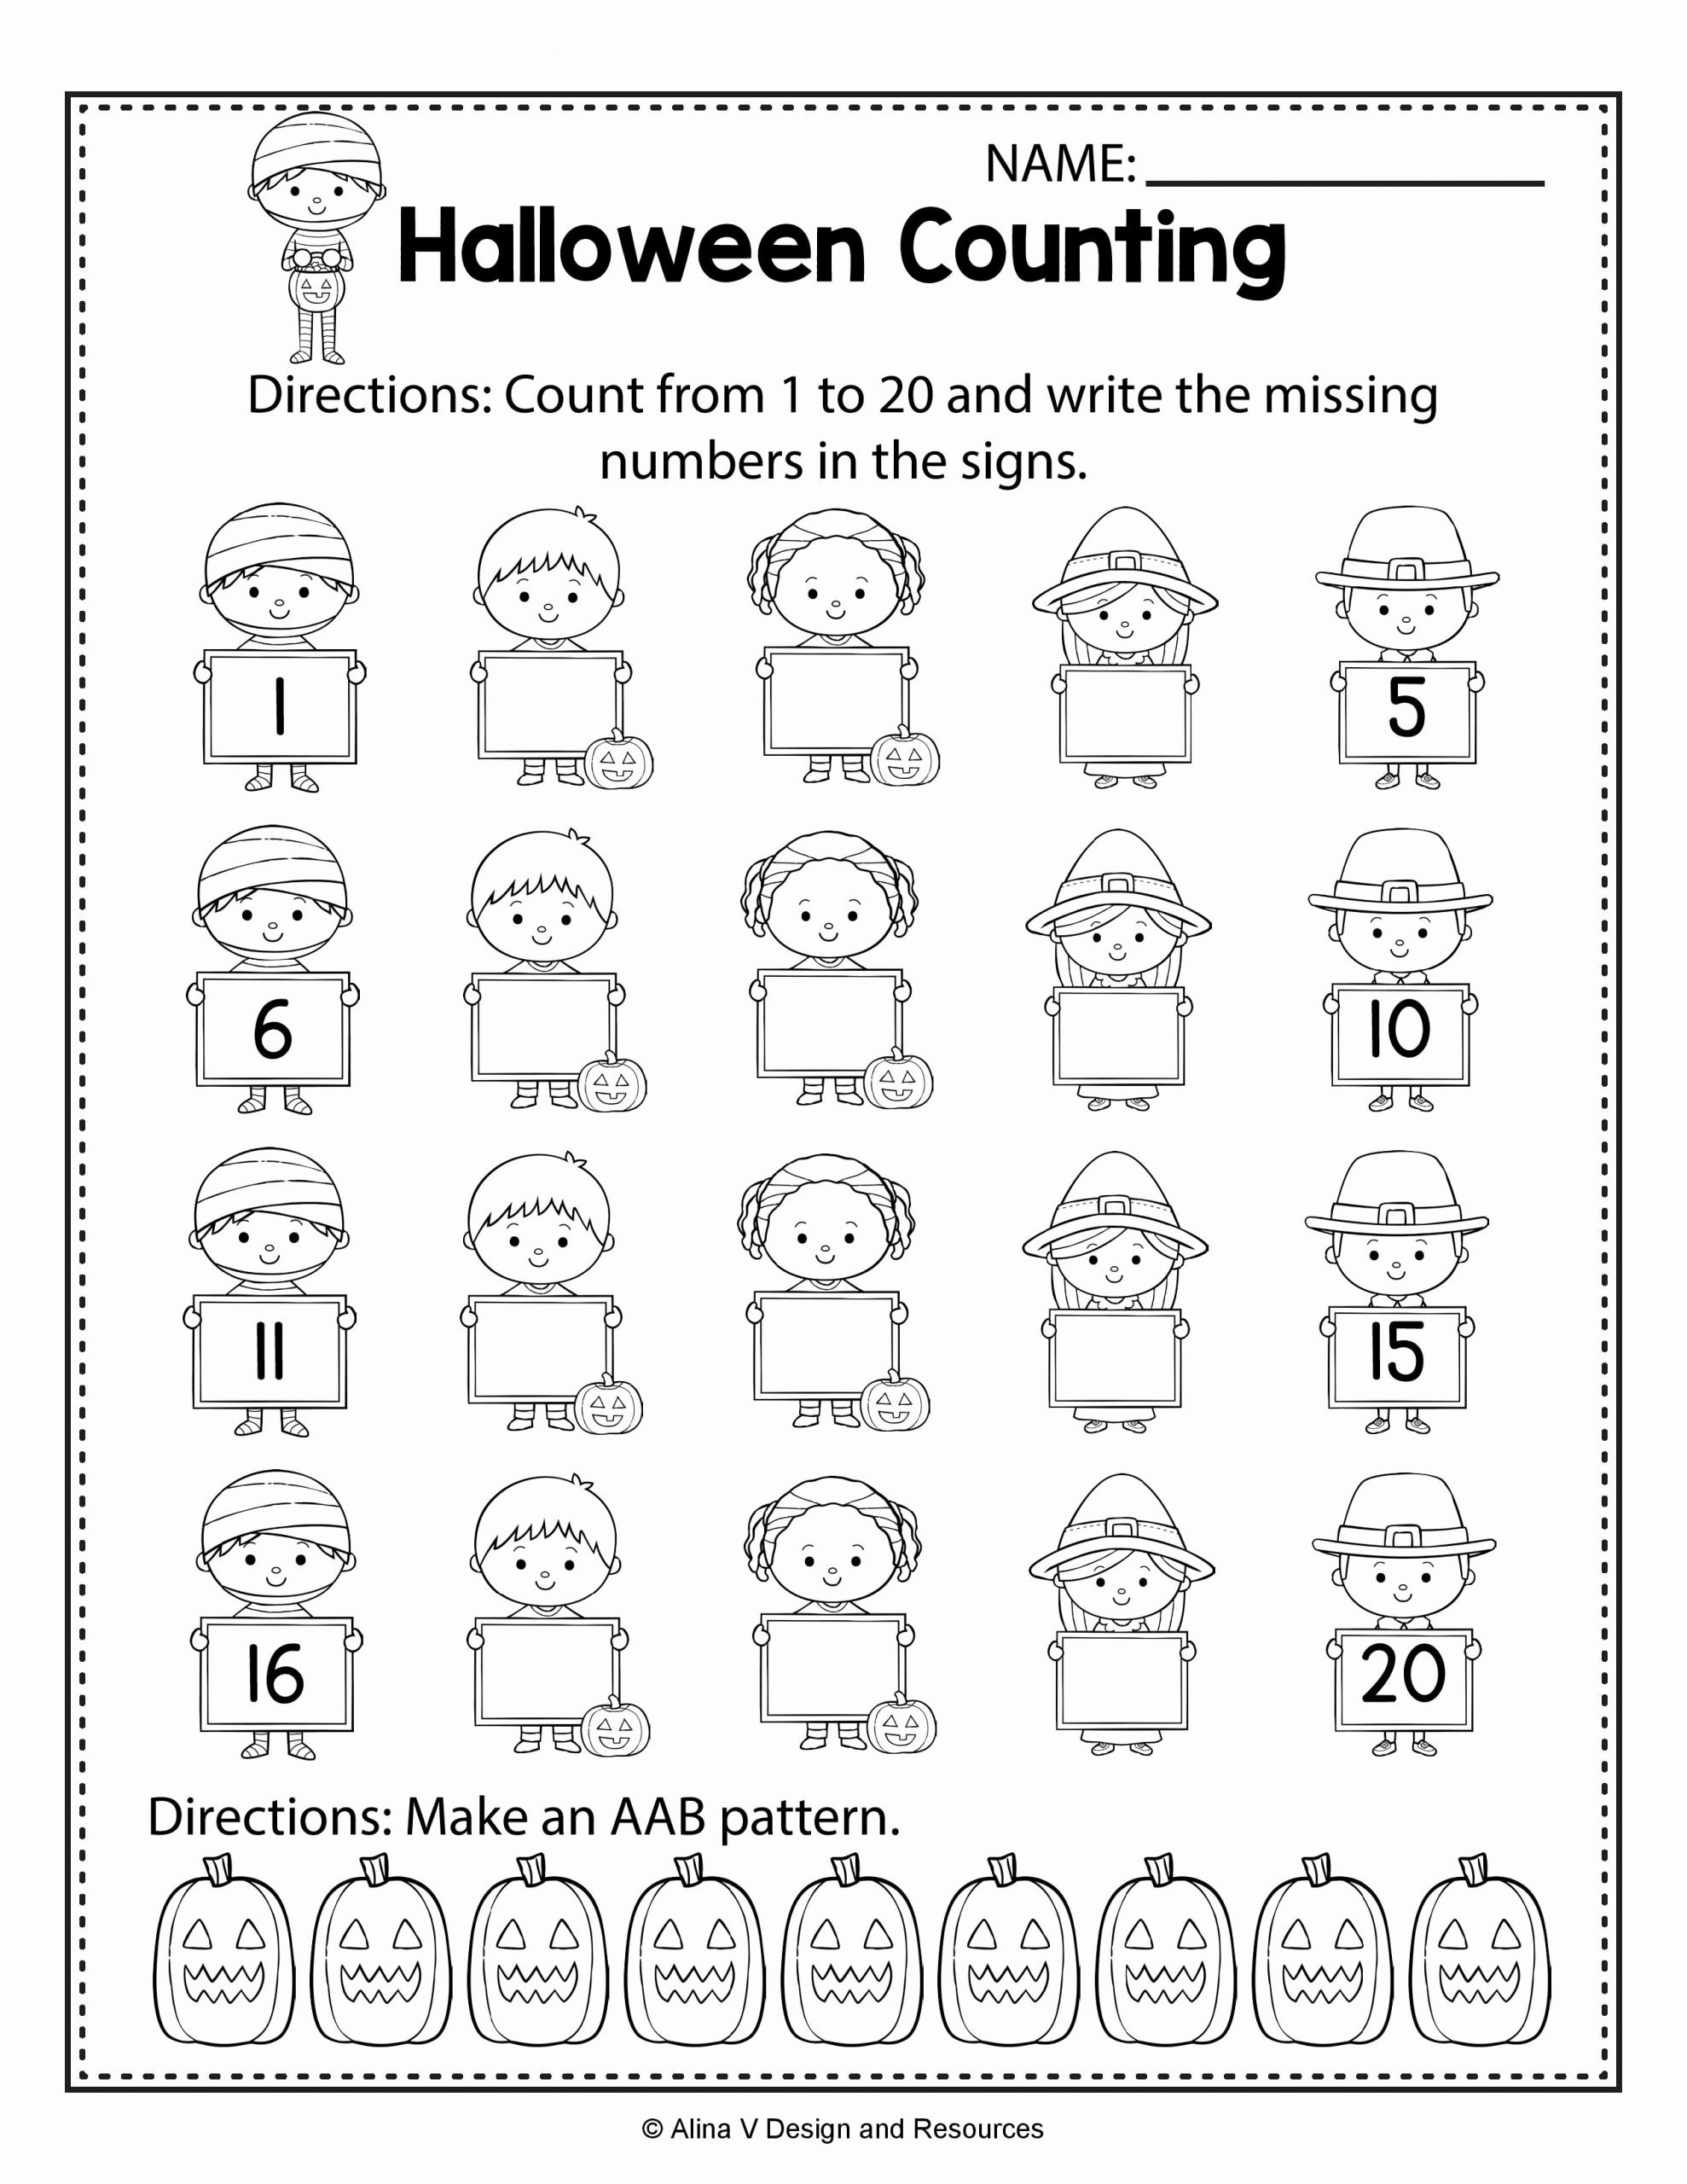 Halloween Counting Worksheets for Preschoolers Lovely Halloween Counting Math Worksheets and Activities for